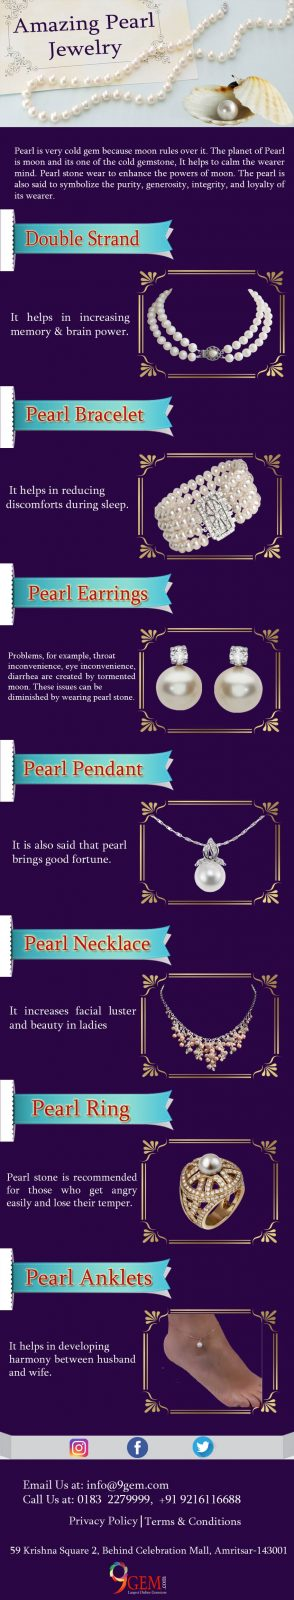 Amazing Pearl Jewelry